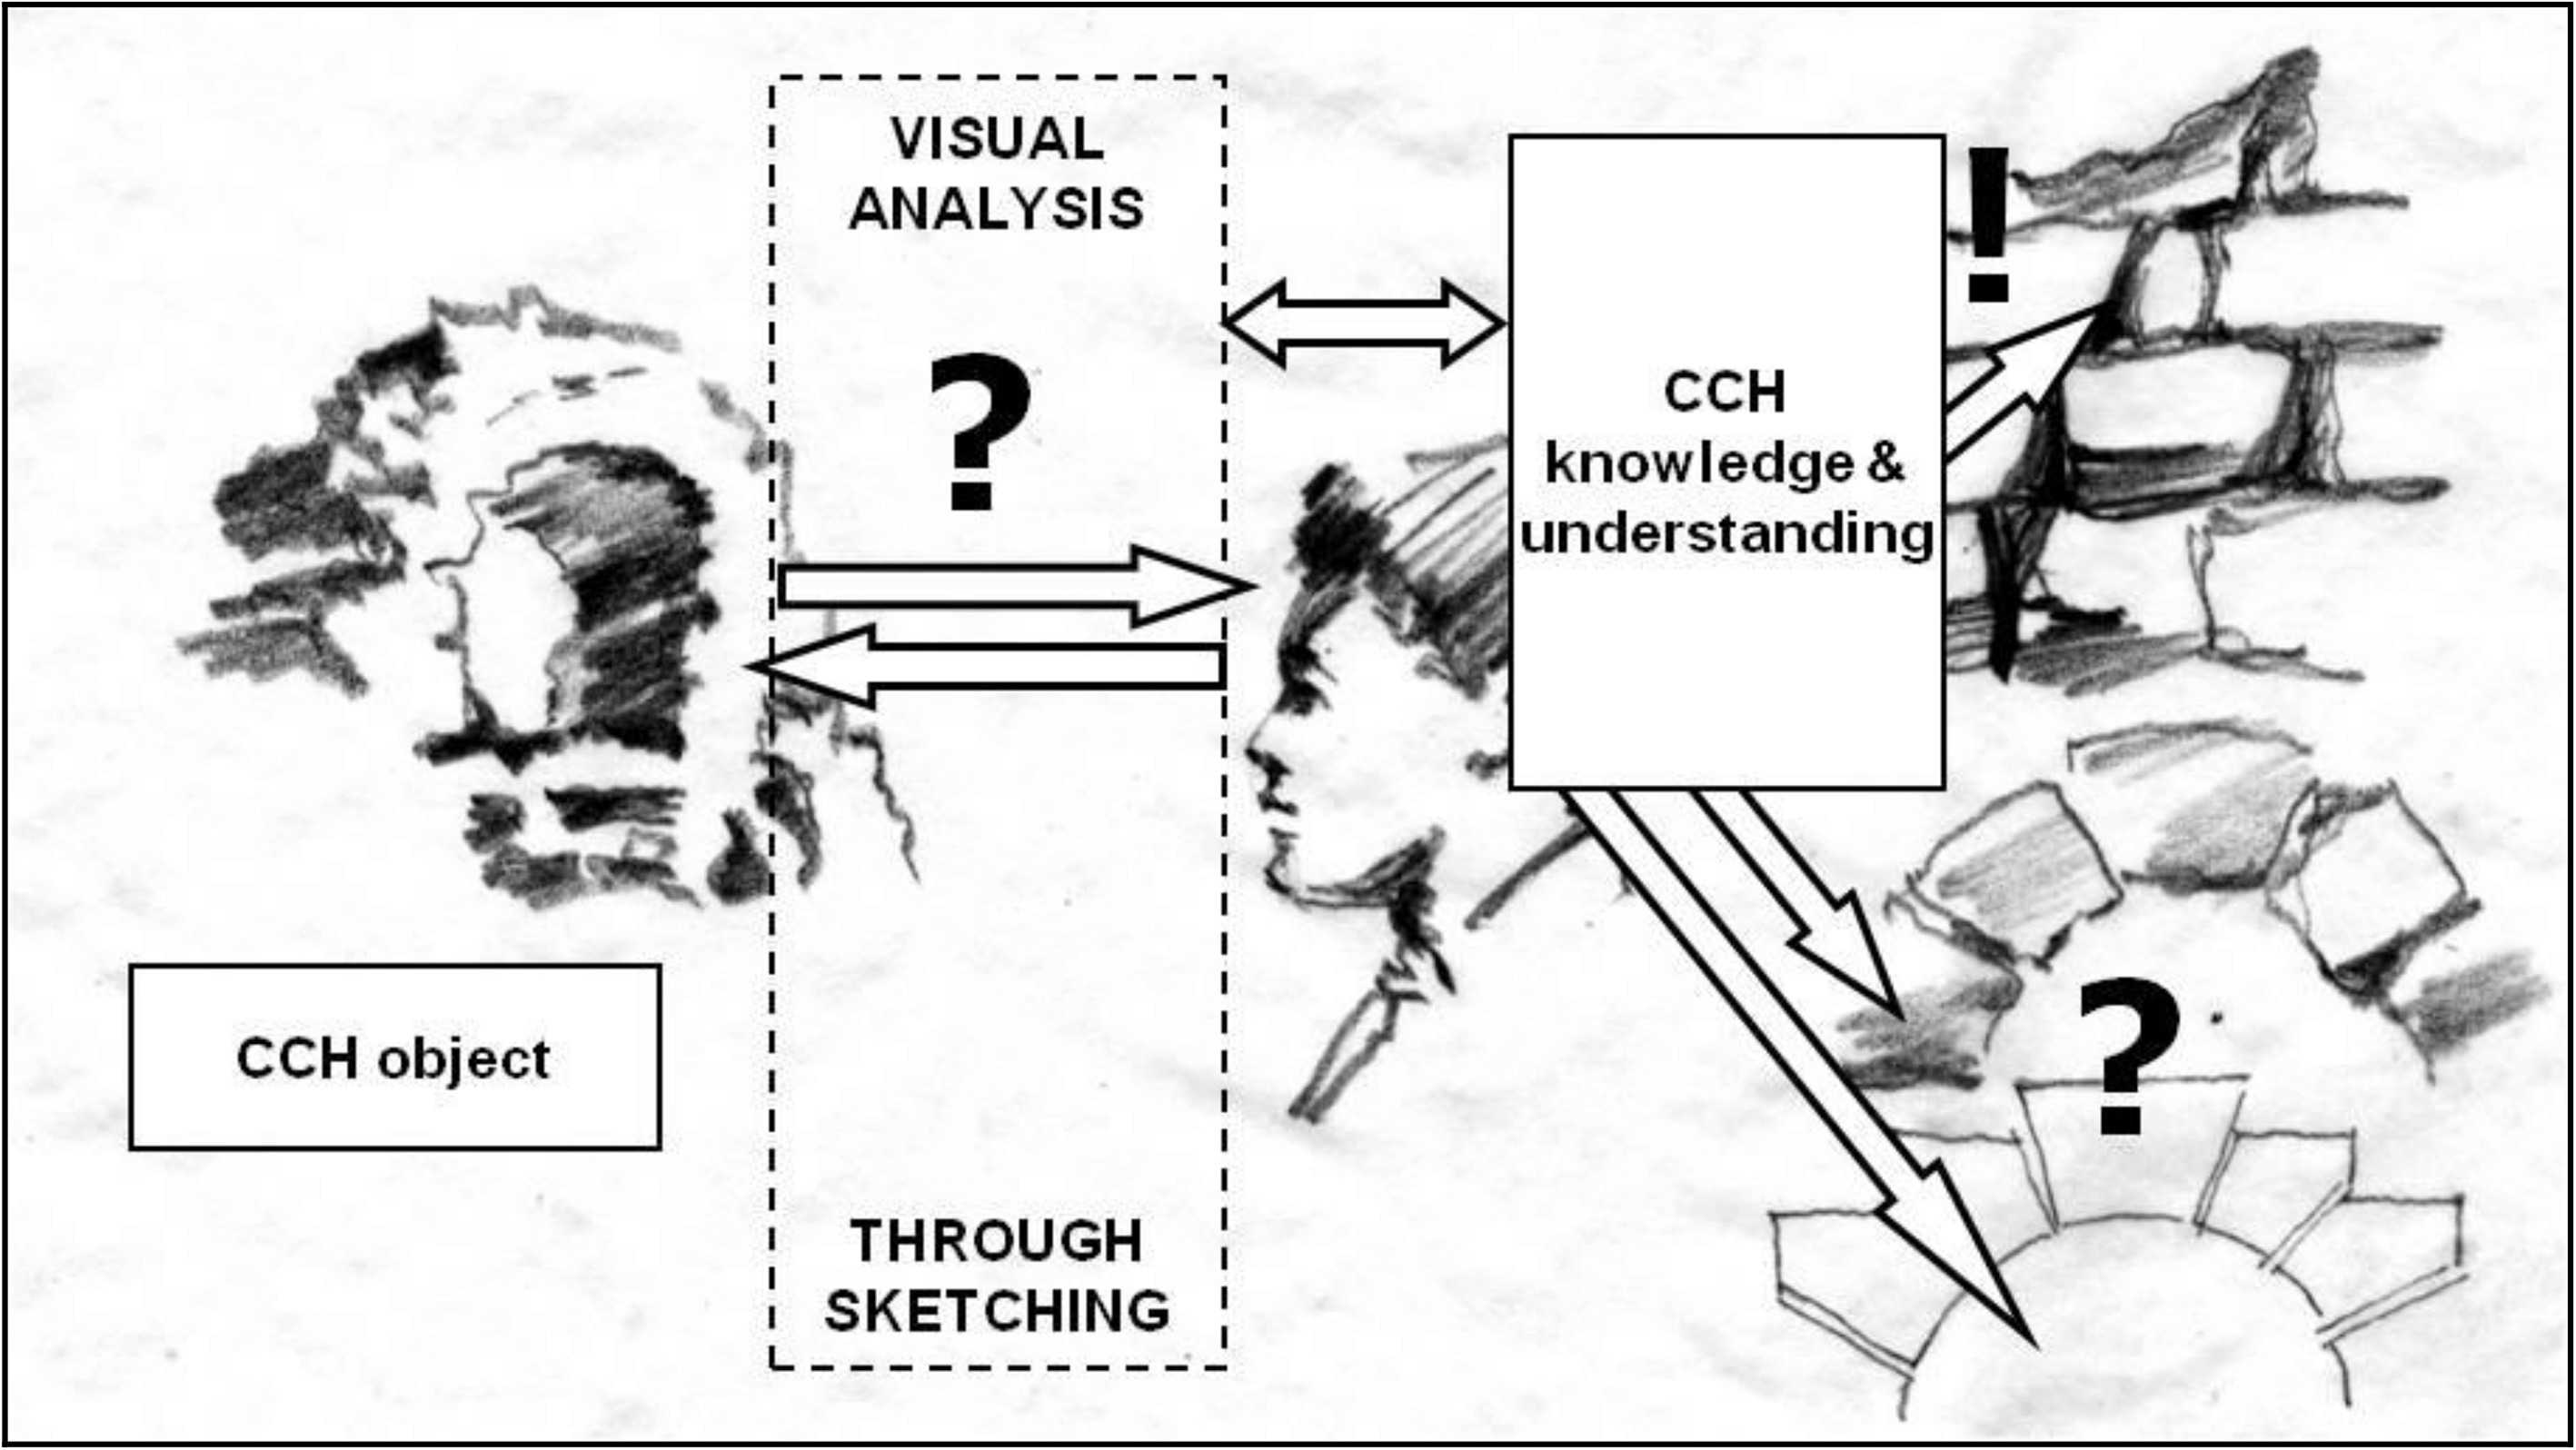 """Human"""" Technology in the Digital Era: Freehand Images and Analysis ..."""